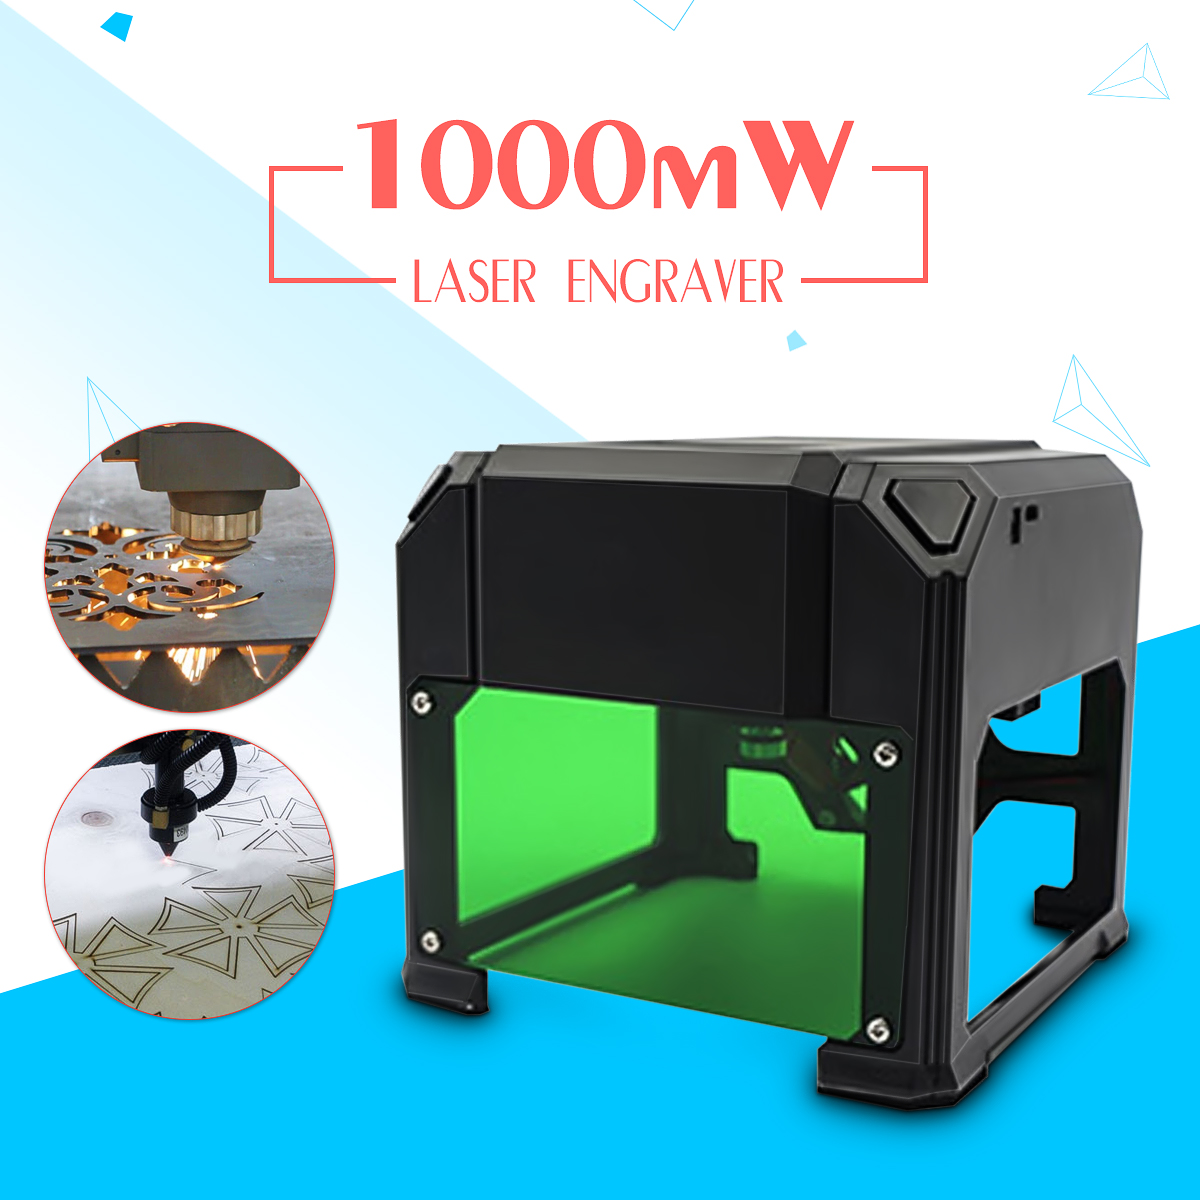 1000mW Desktop Laser Engraver DIY Logo Mark Printer CNC Cutter Laser engraving Machine 80x80mm Engraving Range 1000mw diy desktop mini laser engraver engraving machine laser cutter etcher 50x65cm adjustable laser power